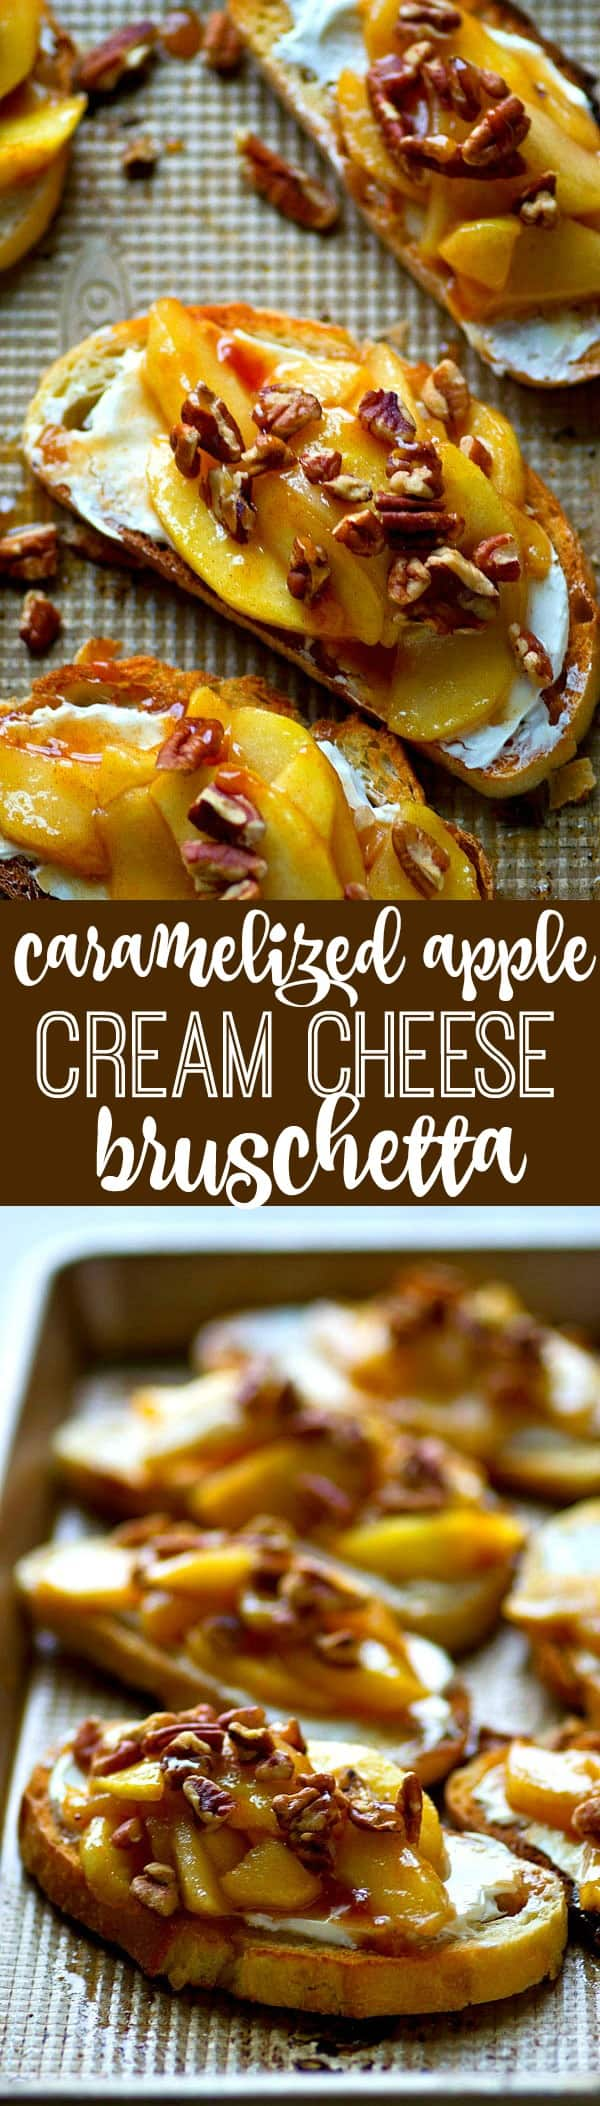 Sweet 'n' spiced caramelized apples piled high on top of cream cheese and crisp french bread is a match made in HEAVEN in this gorgeous cream cheese bruschetta!